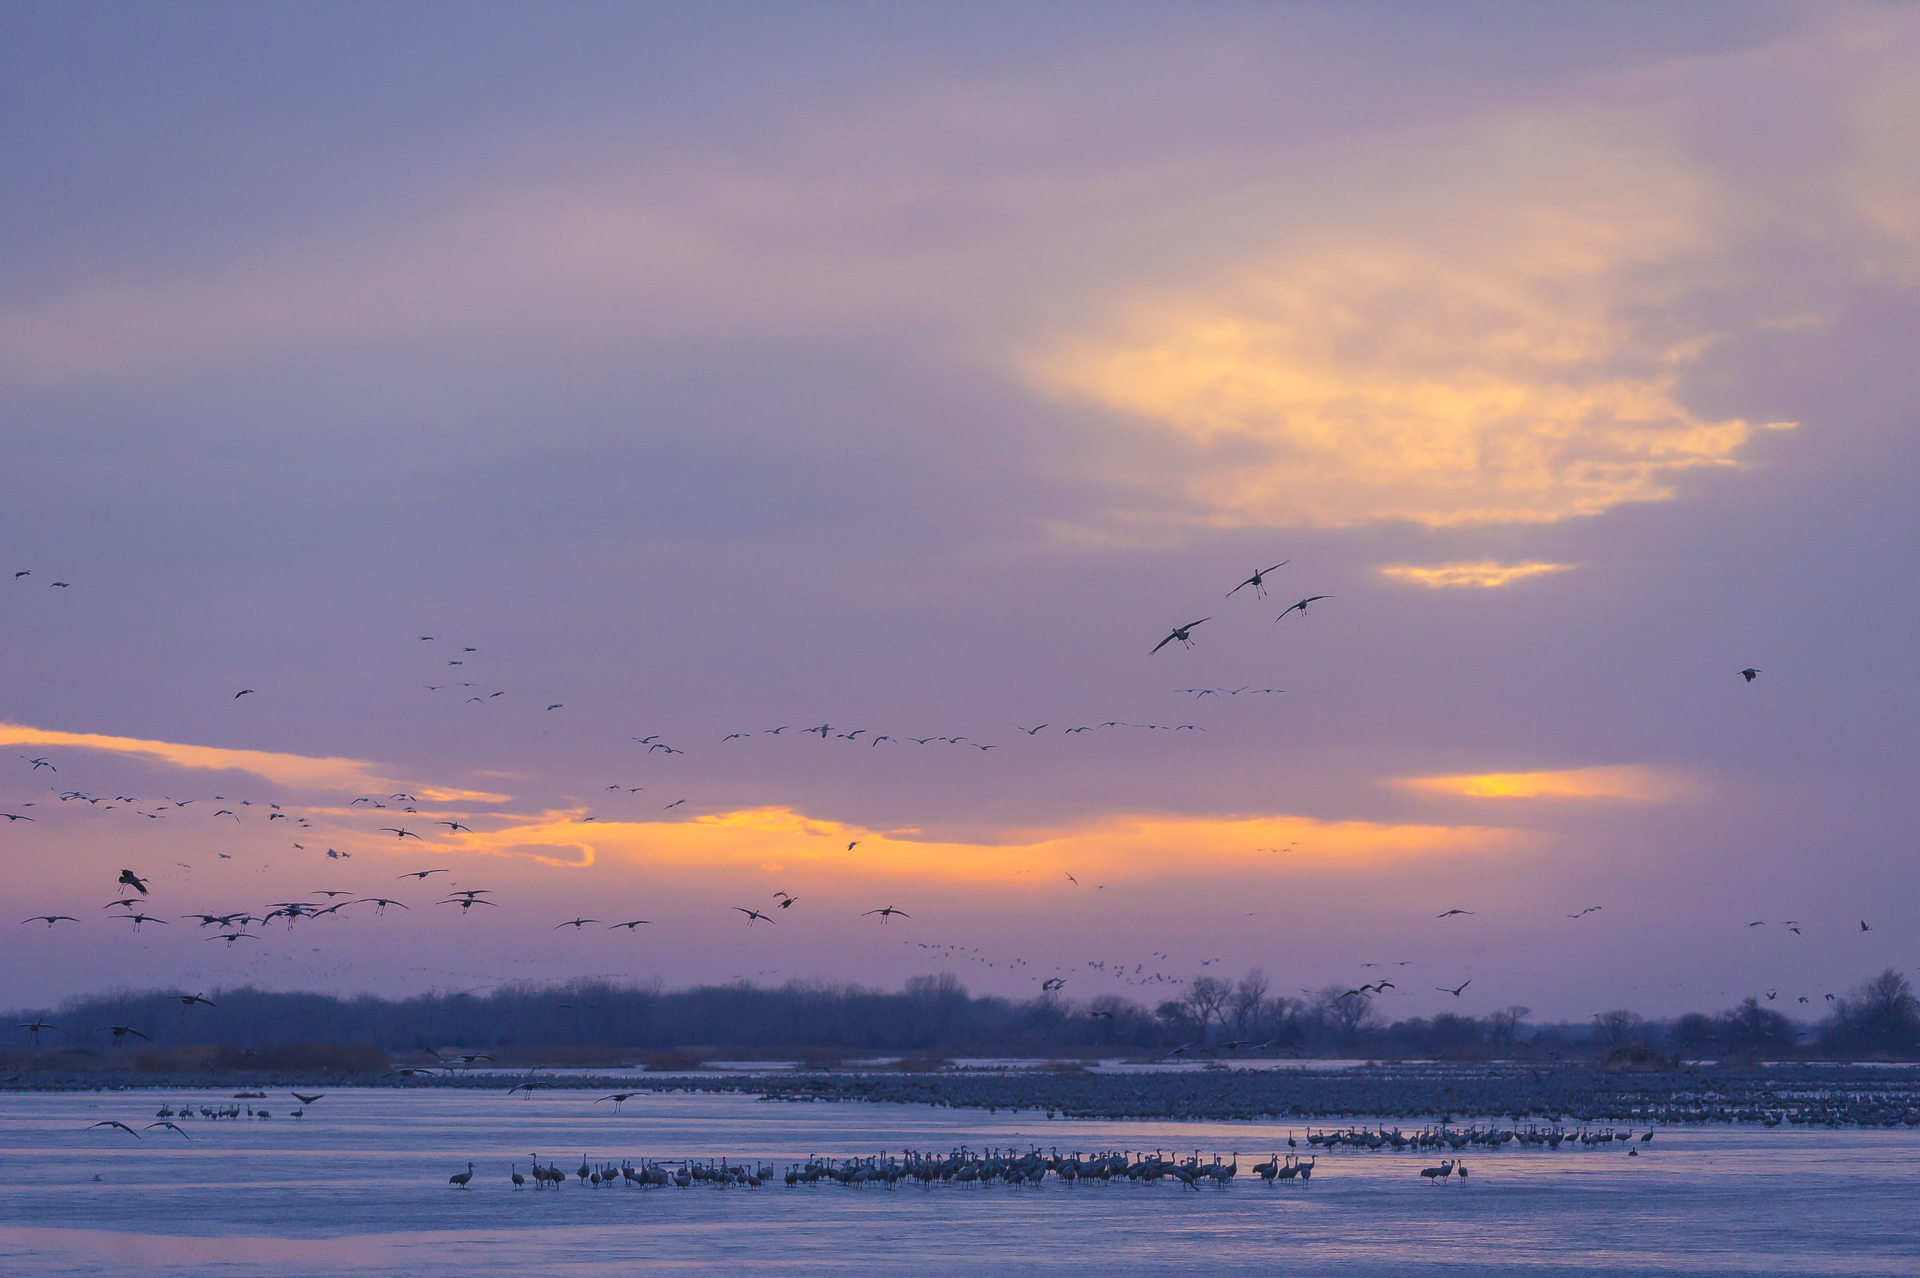 Sandhill cranes descend on the Platte River at sunset to roost